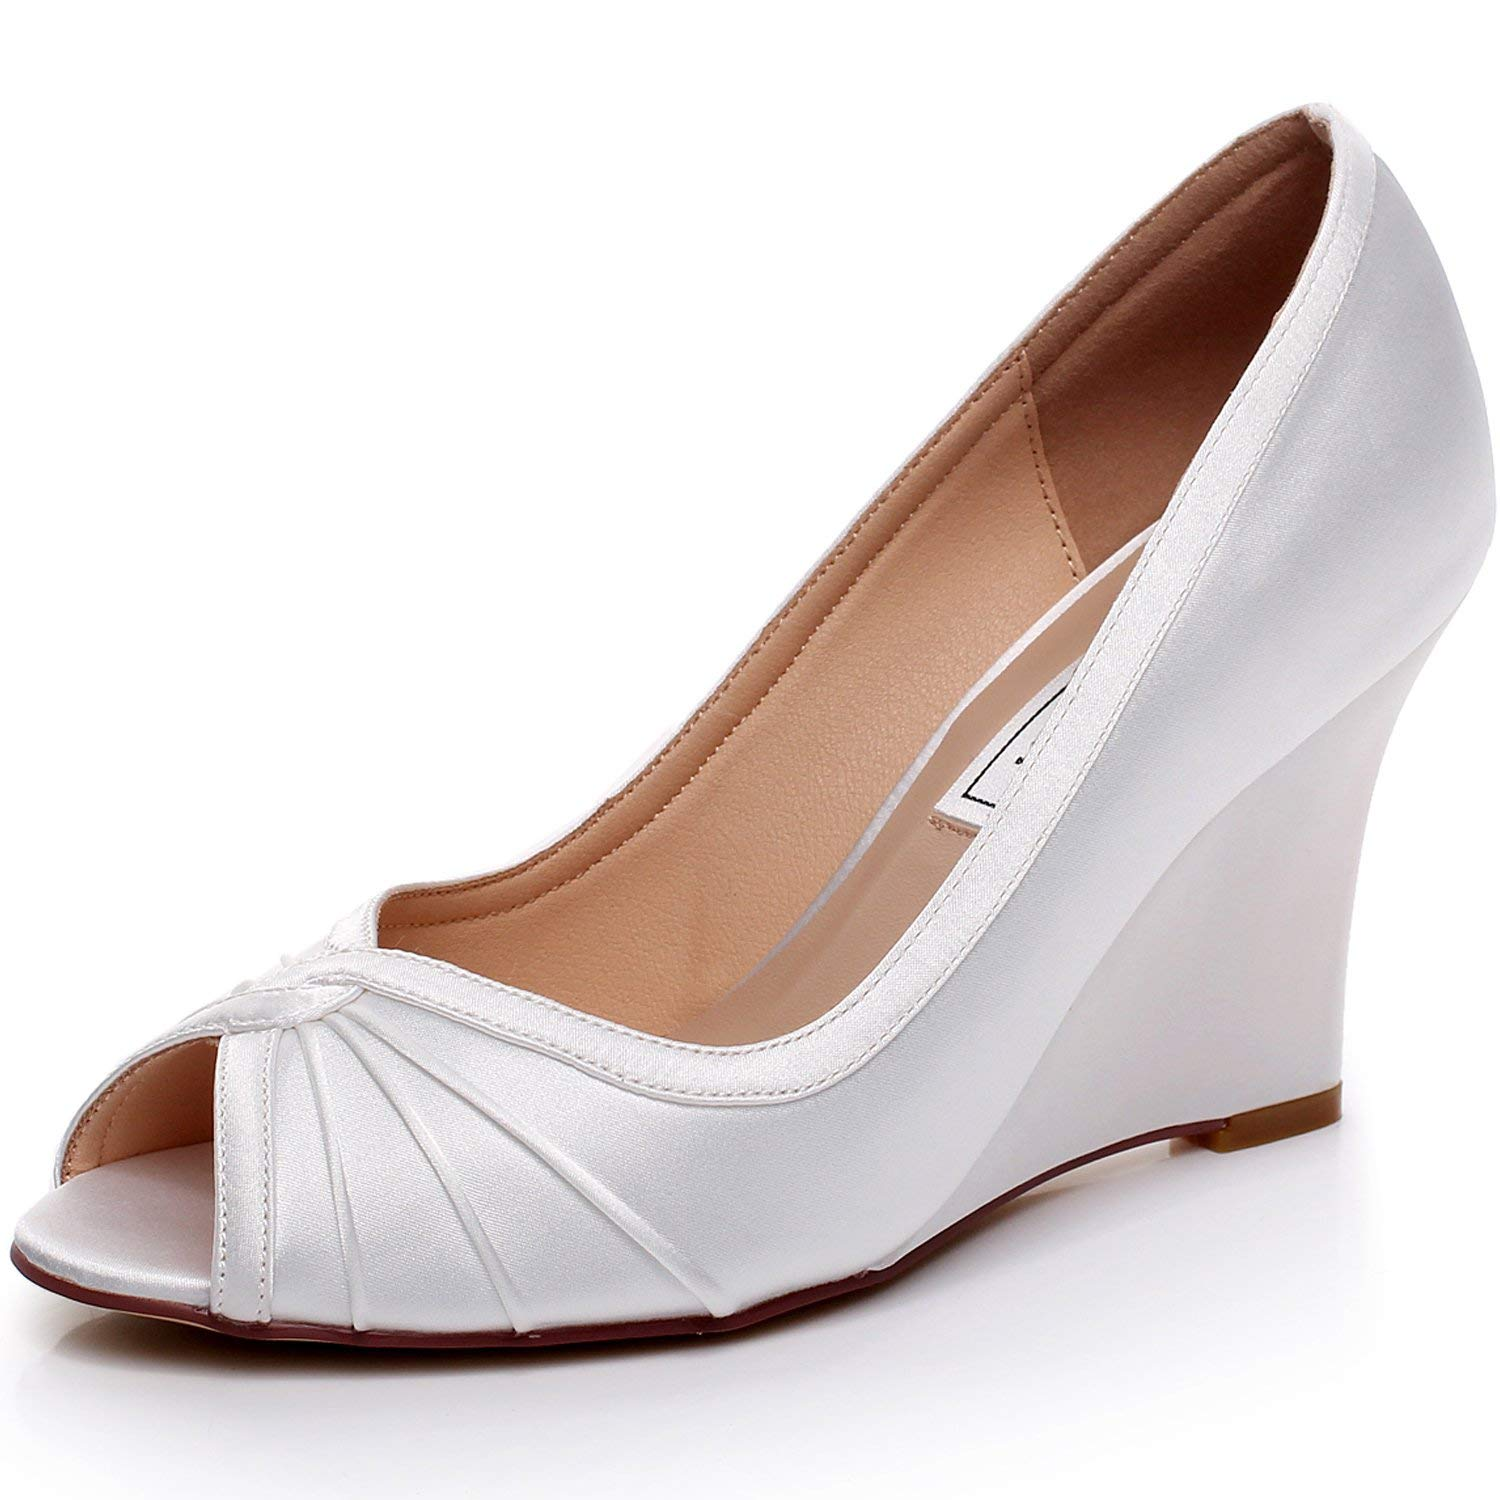 LUXVEER Satin Wedding Shoes Bridal Shoes Women Shoes Wedding Wedges Peep Toe,Medium Heels 3.5 inch